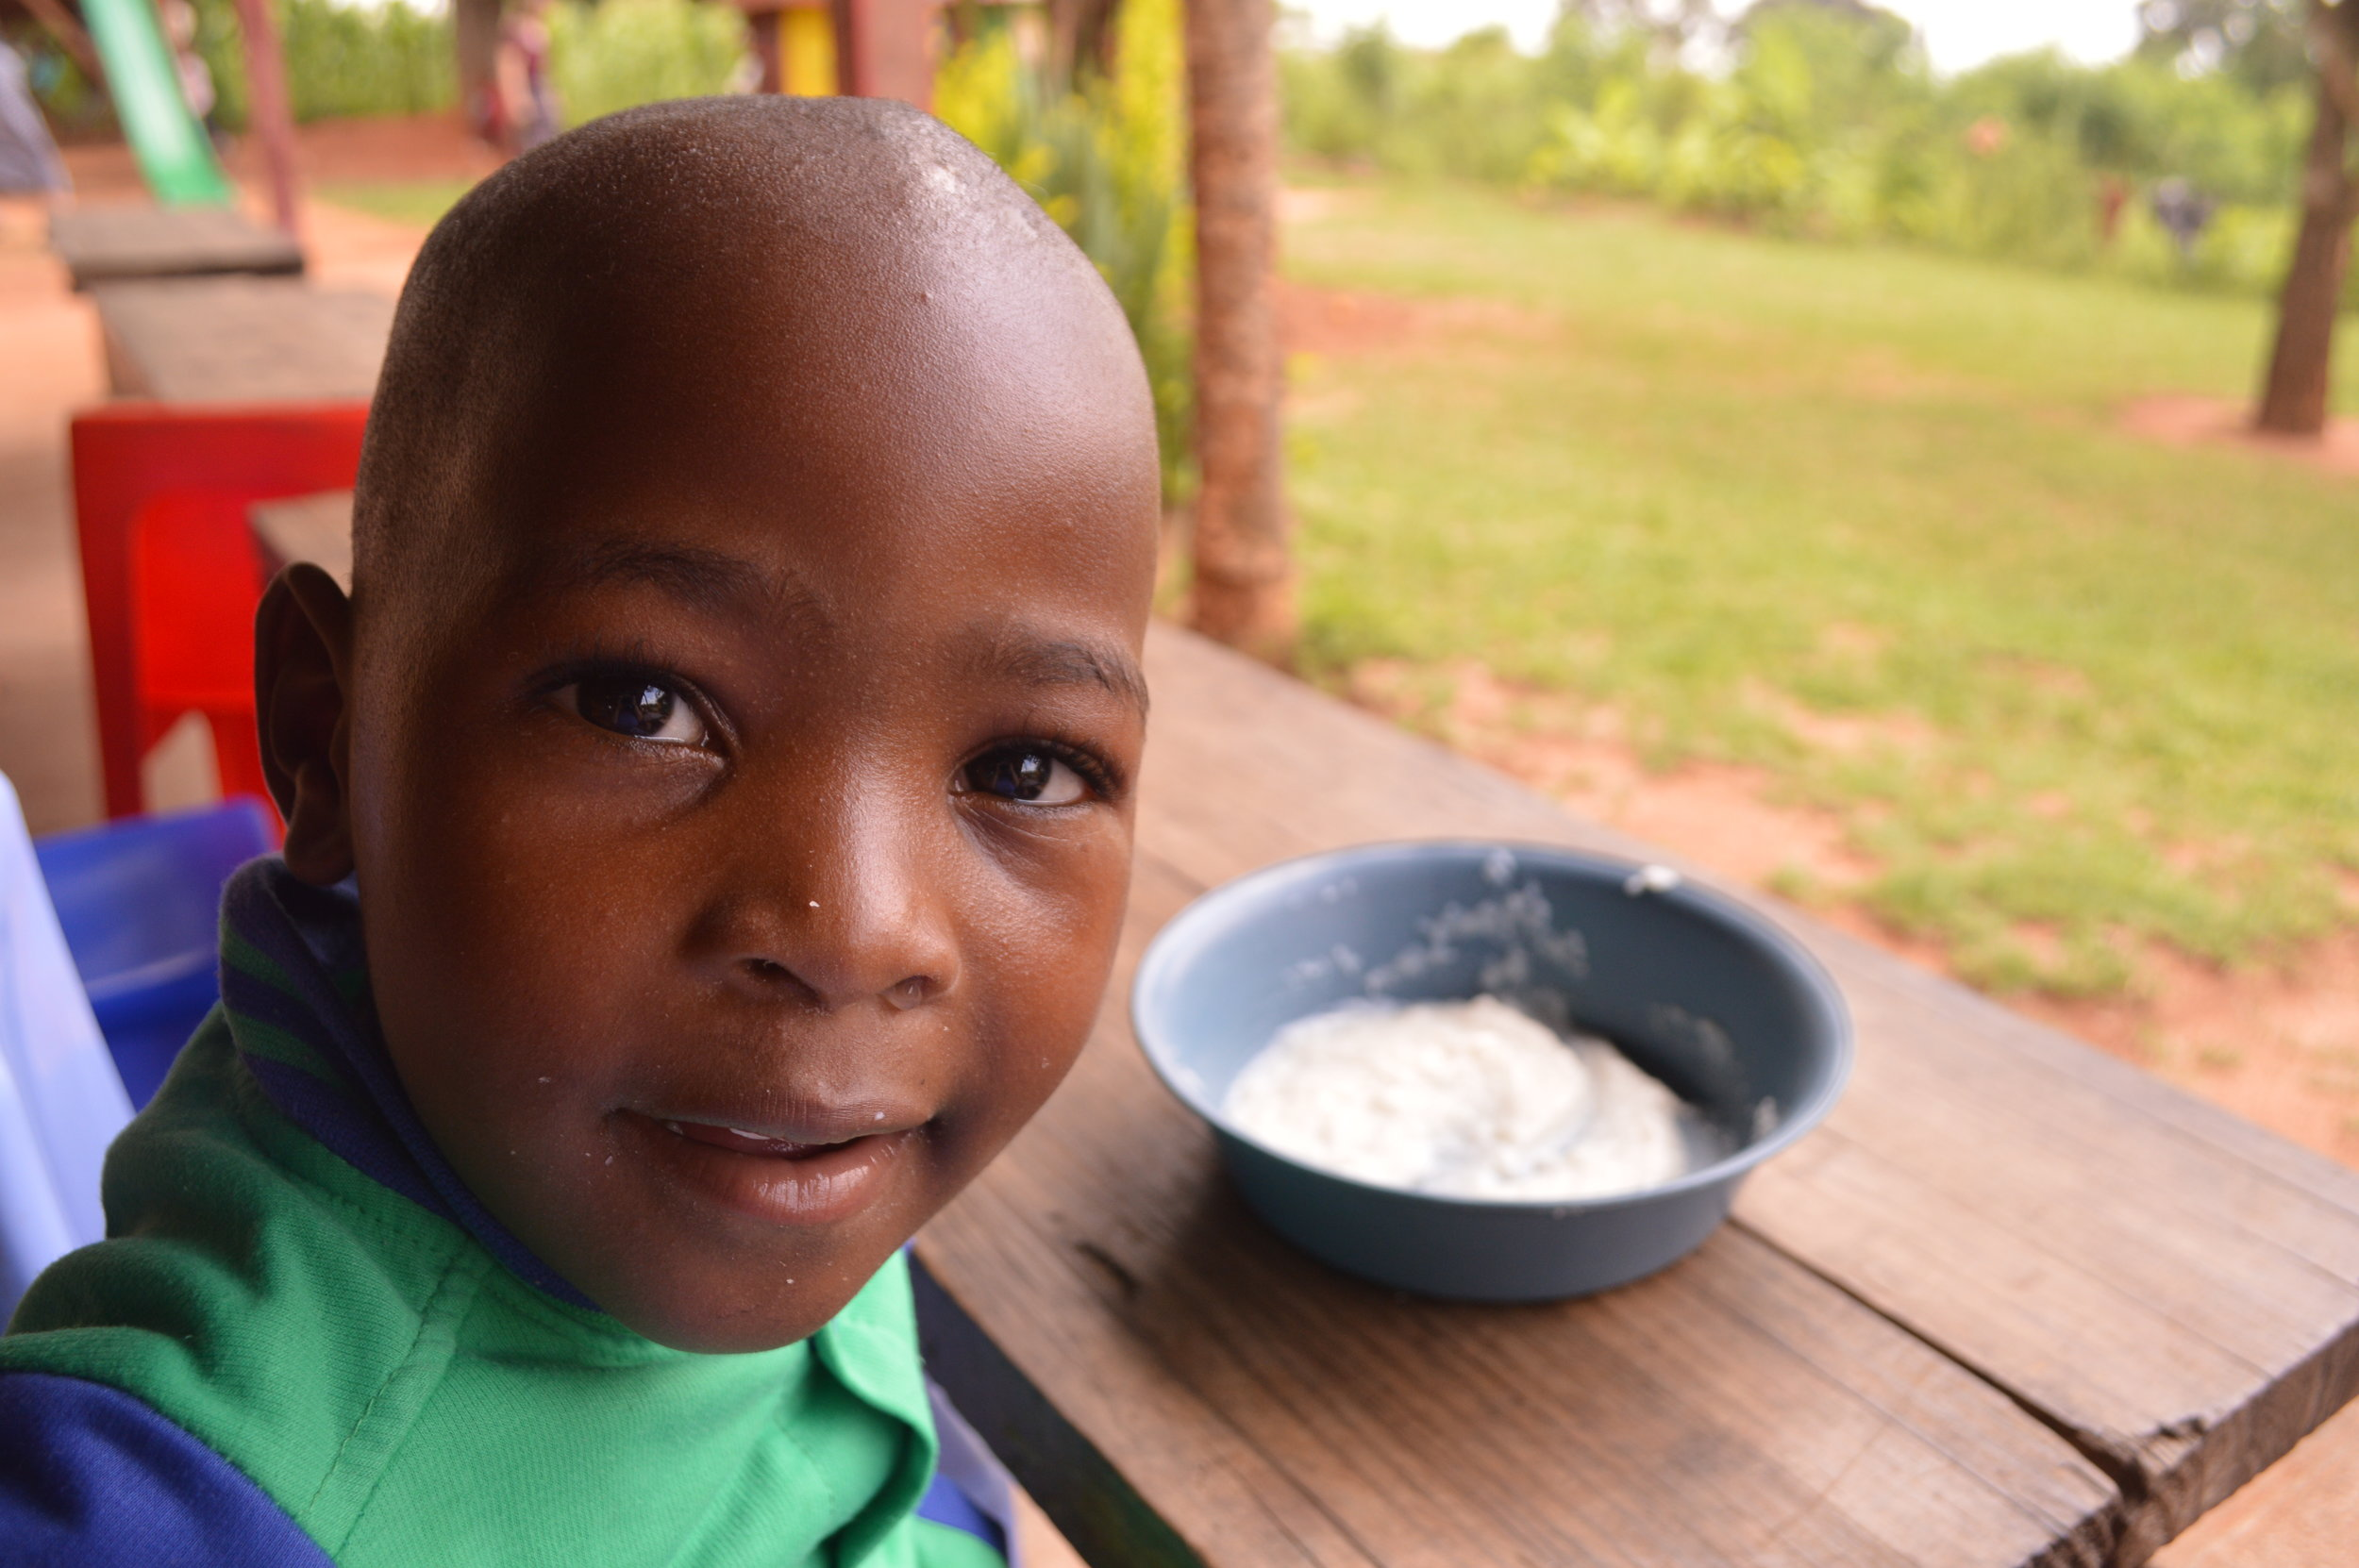 One of our precious lil friends from Lula Orphan Center